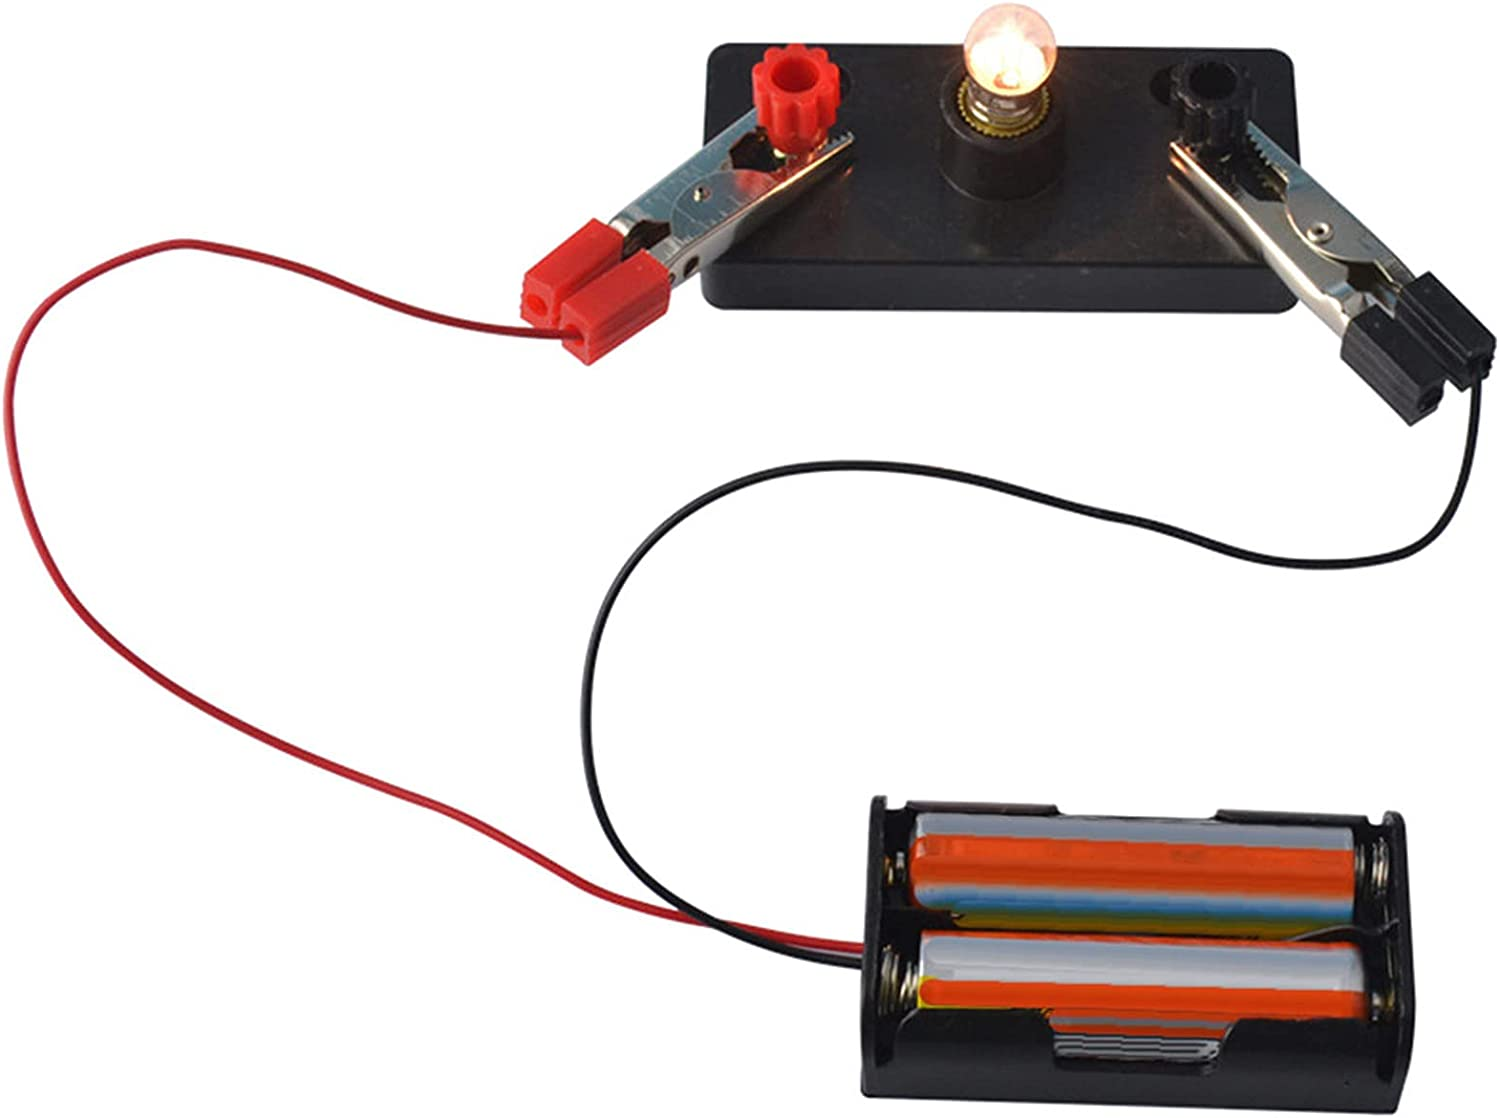 1Set Electrical Circuit Experiment Kit Physics for Max 51% OFF Expe Fun Kids Attention brand